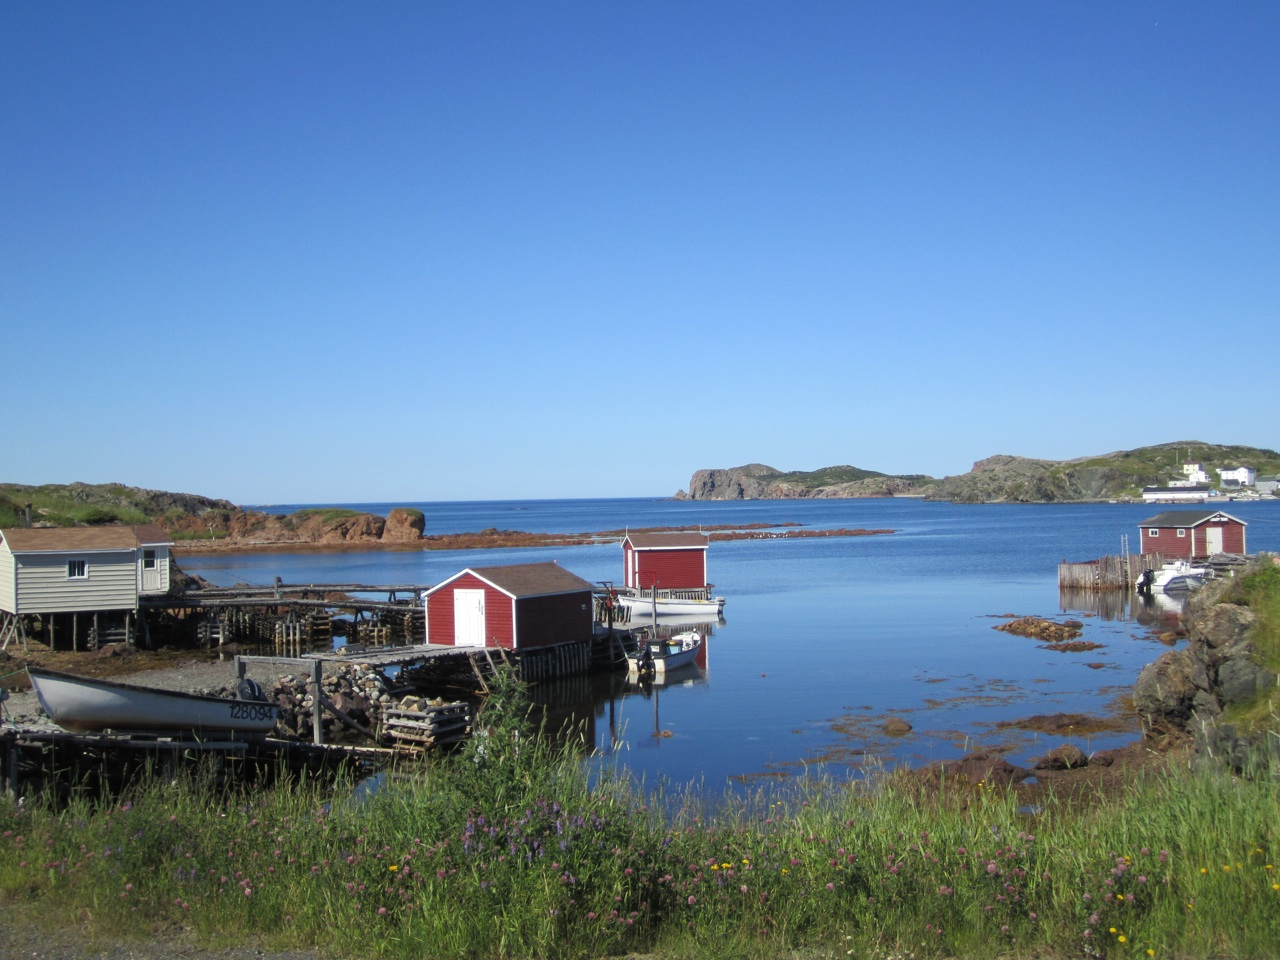 Docks And Fishing Shacks Over The Waters In Twillingate